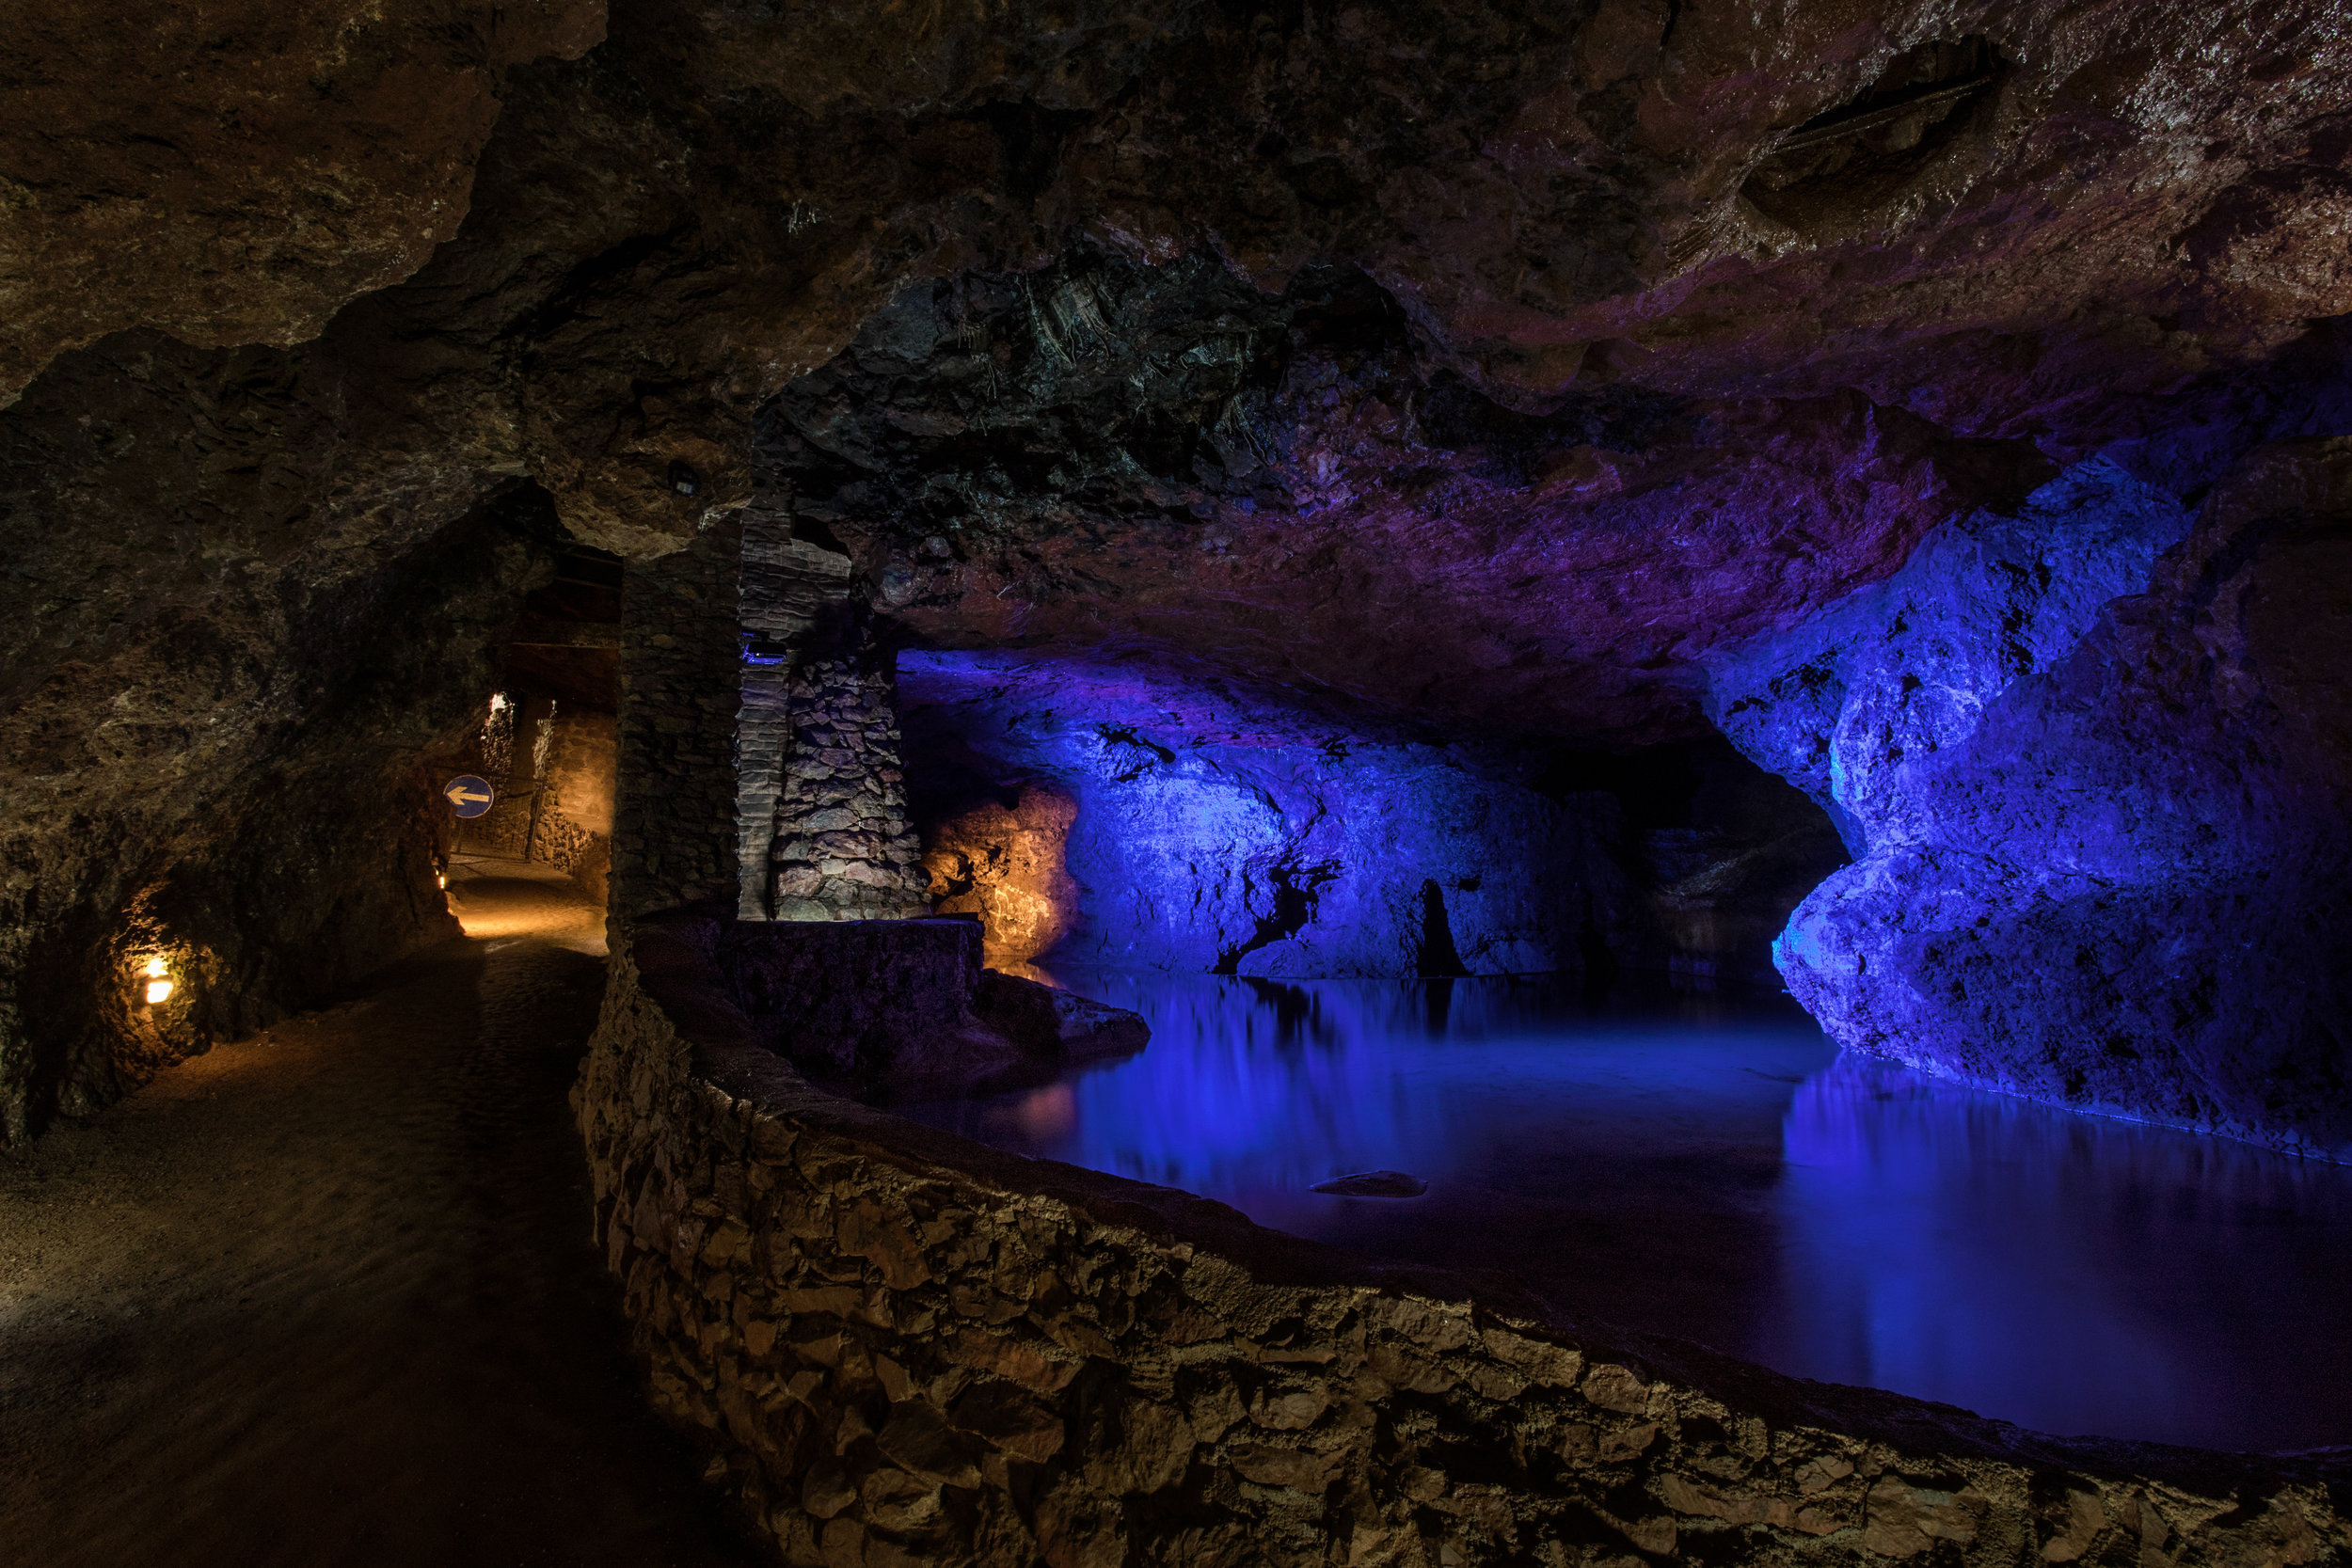 imagine_photography-cheltenham_photography_company-clearwell_caves-caving-lowlight-commercial_photography-agency-marketing-design-1-1.jpg